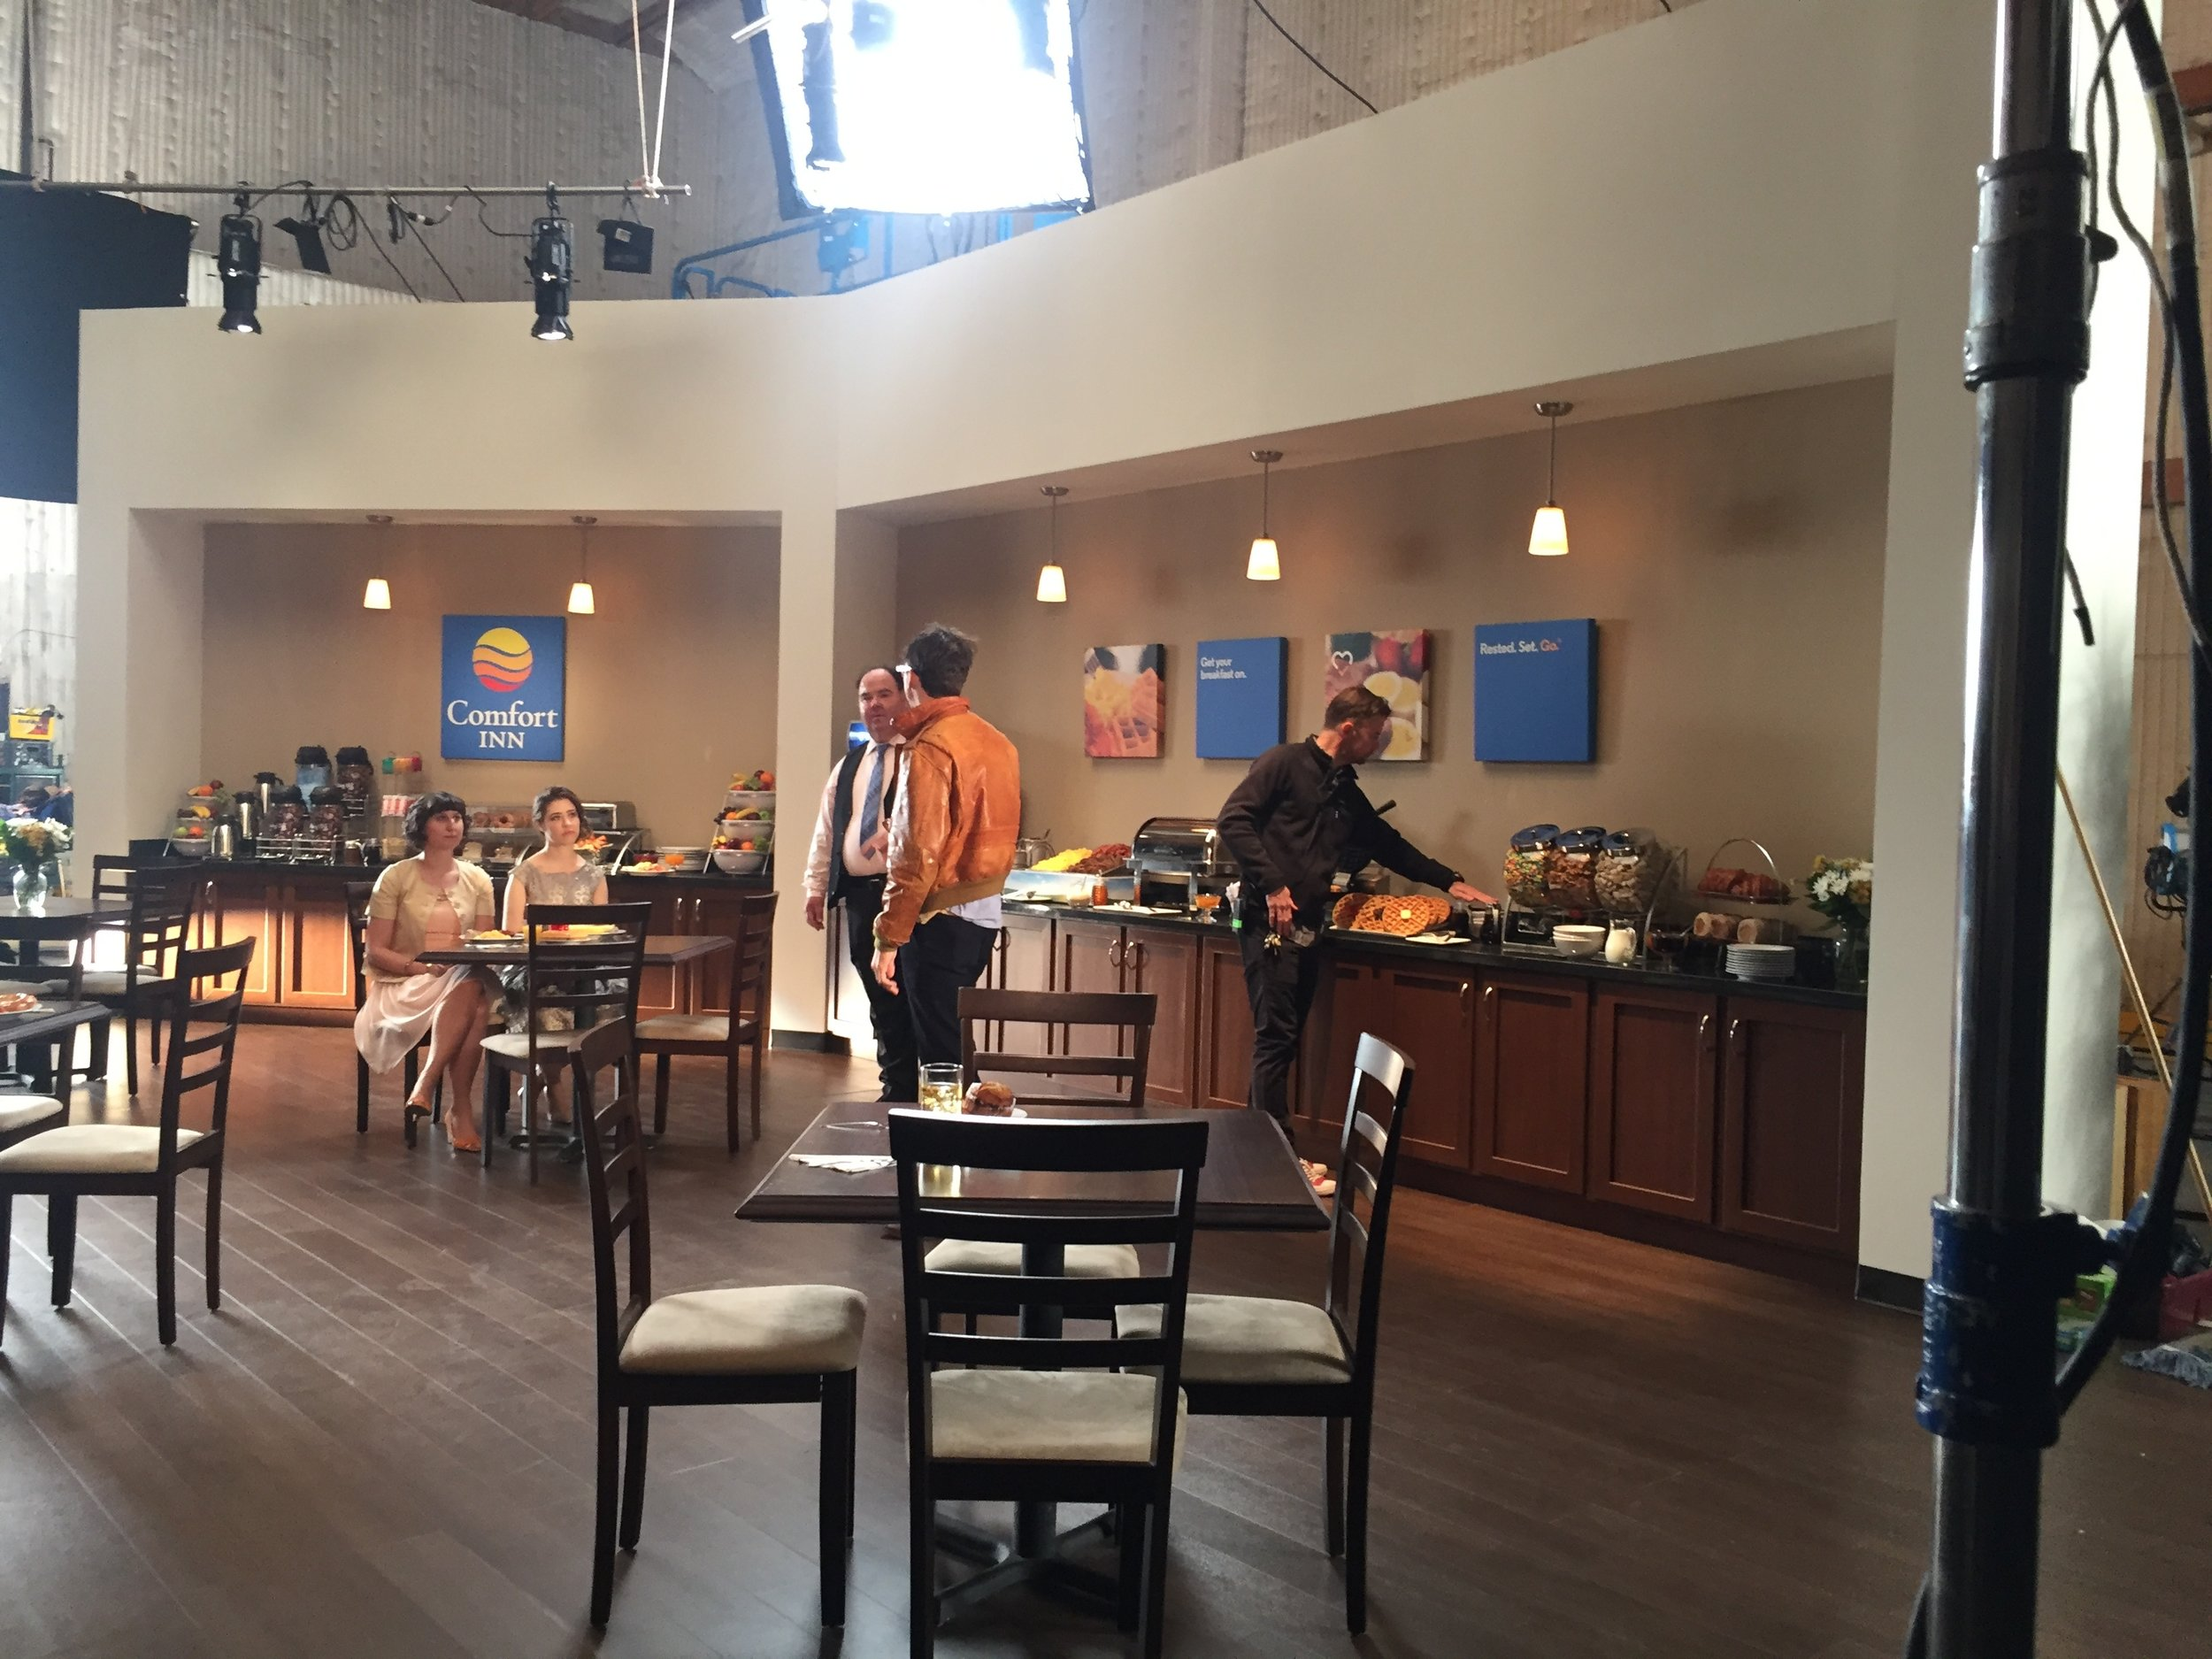 BTS of the breakfast area.